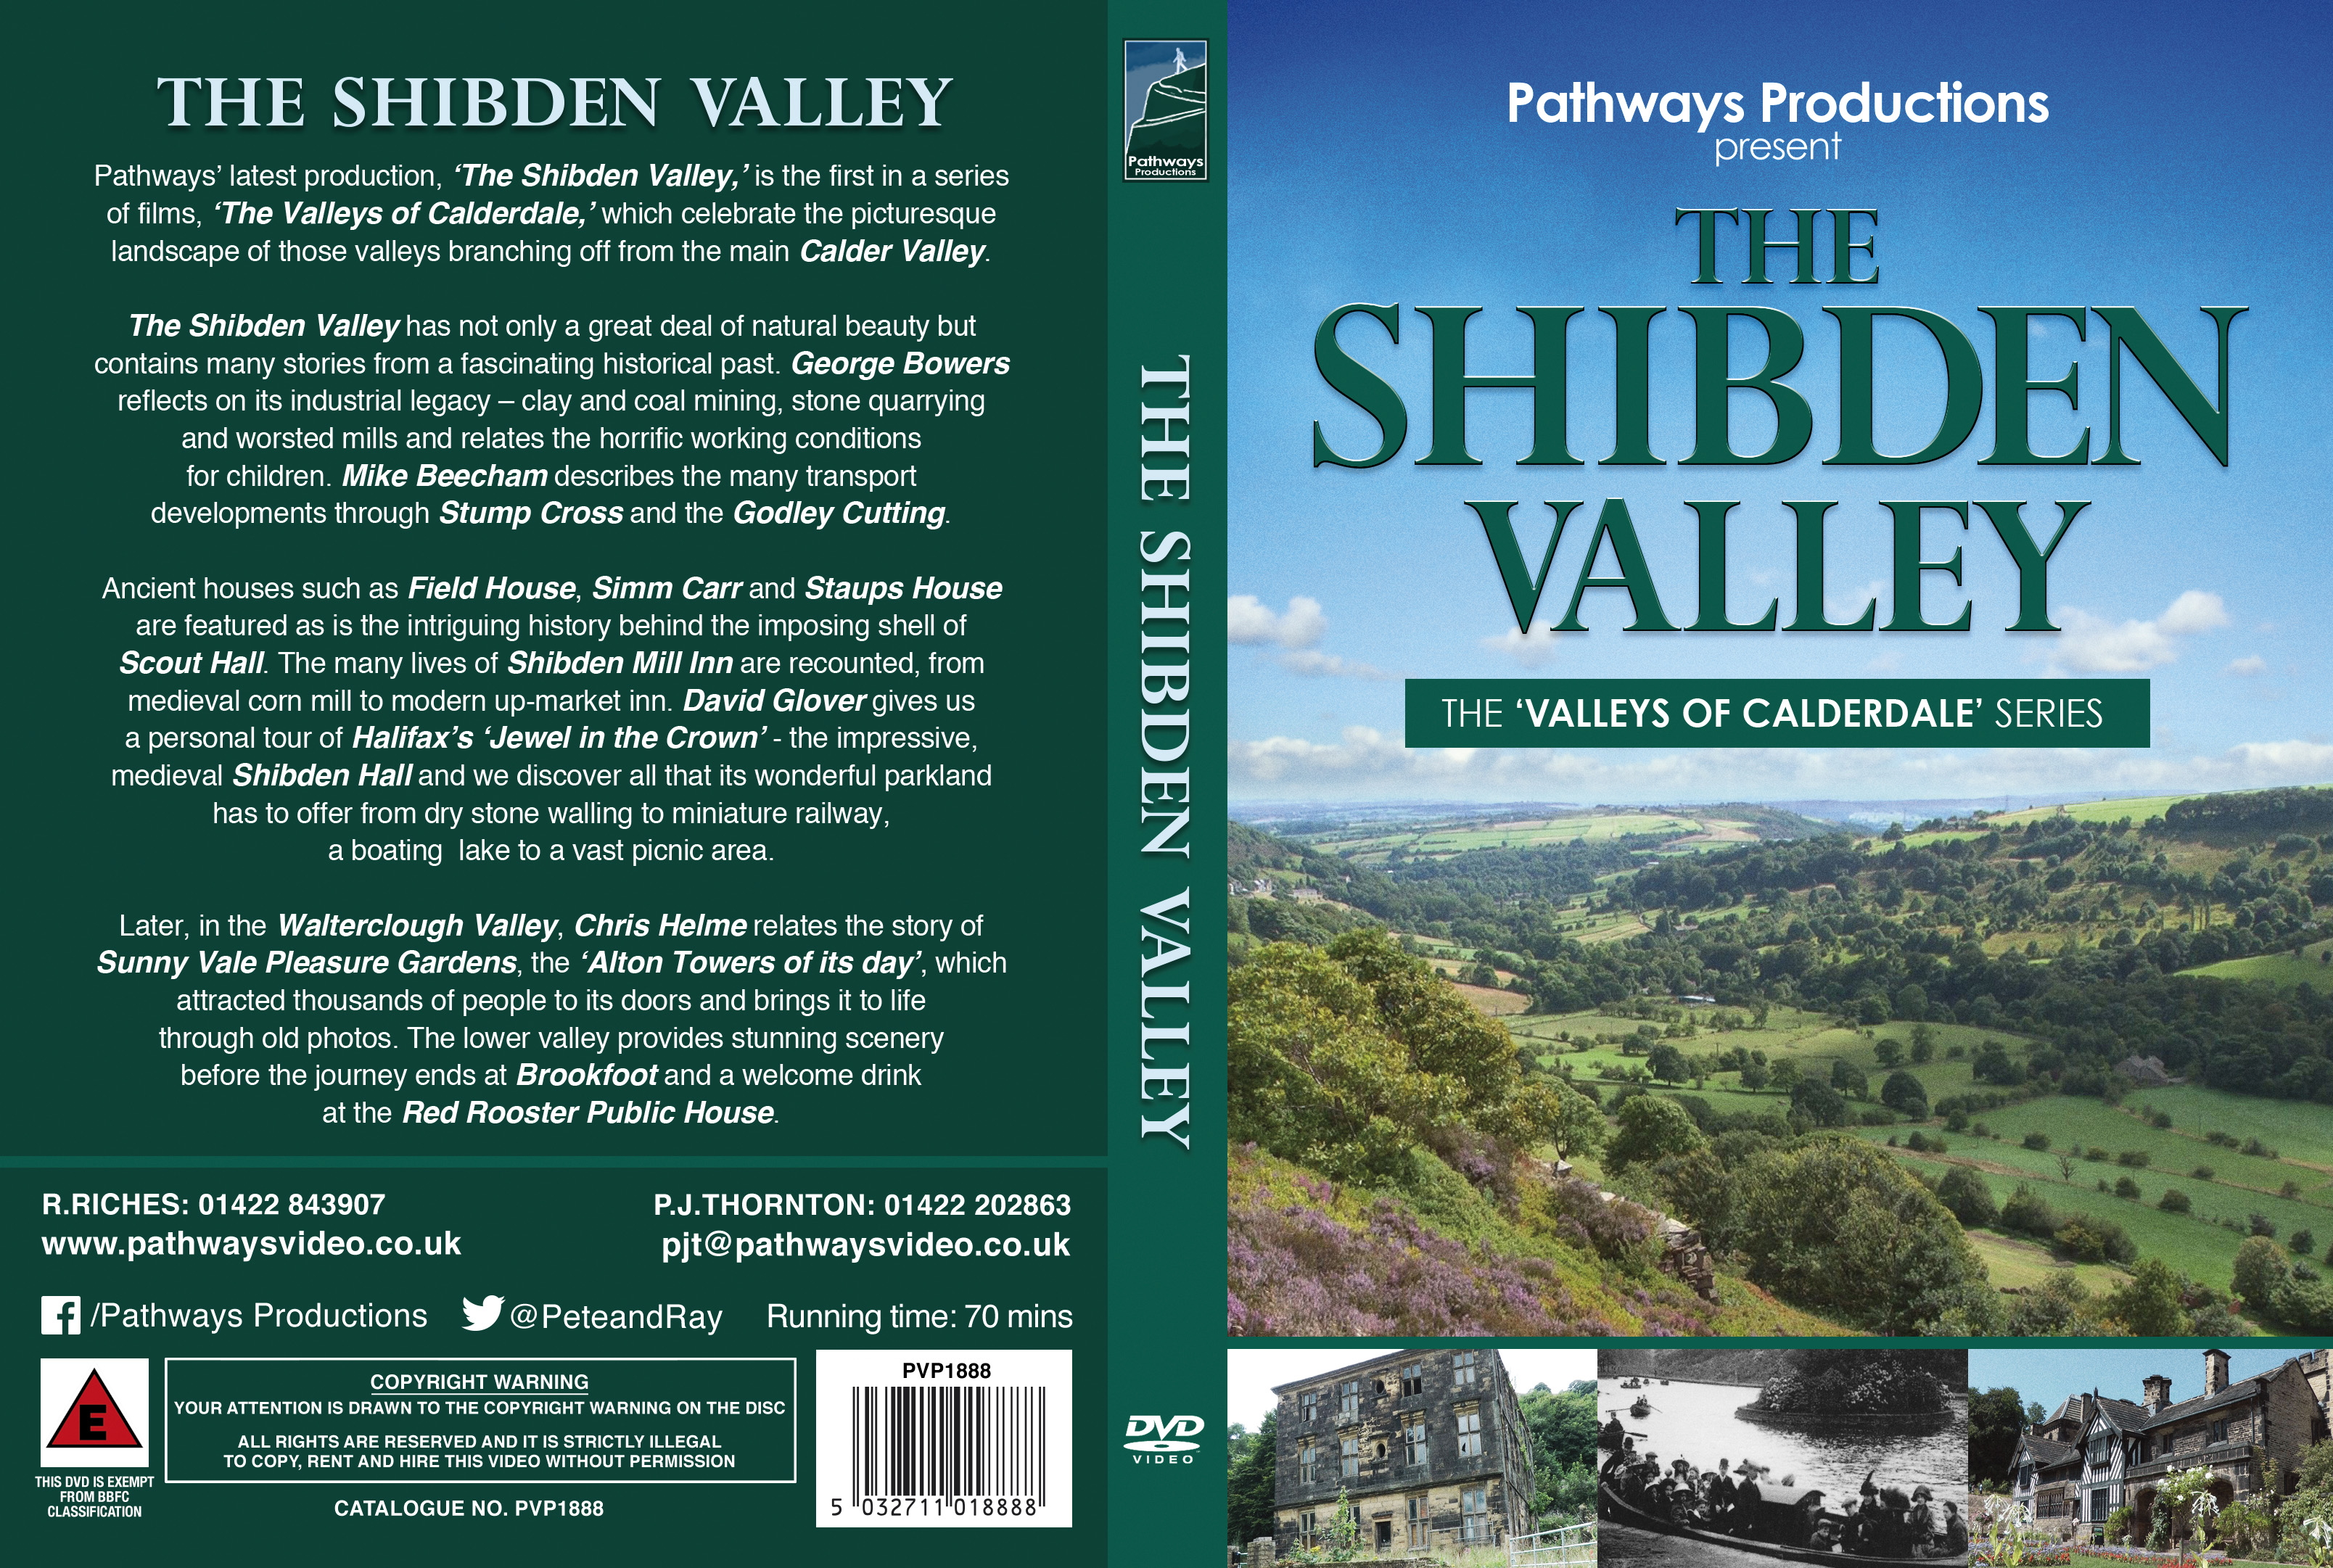 Shibden Valley by Pathways Productions